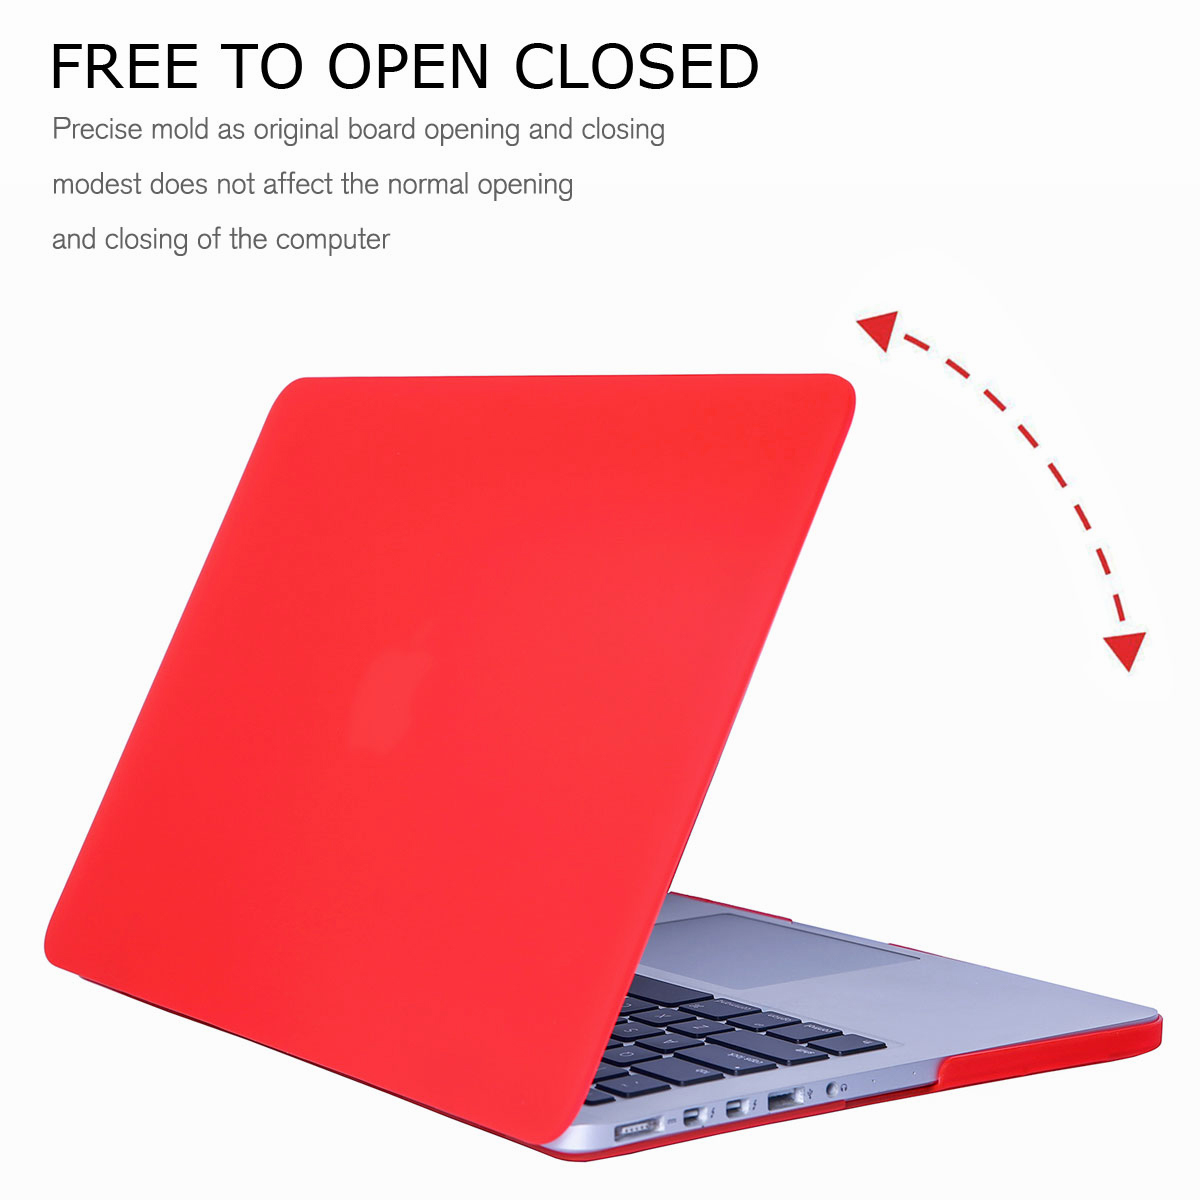 Matte-Rubberized-Hard-Case-Cover-Shell-For-Macbook-Pro-Retina-12-039-039-13-039-039-15-Inch thumbnail 32